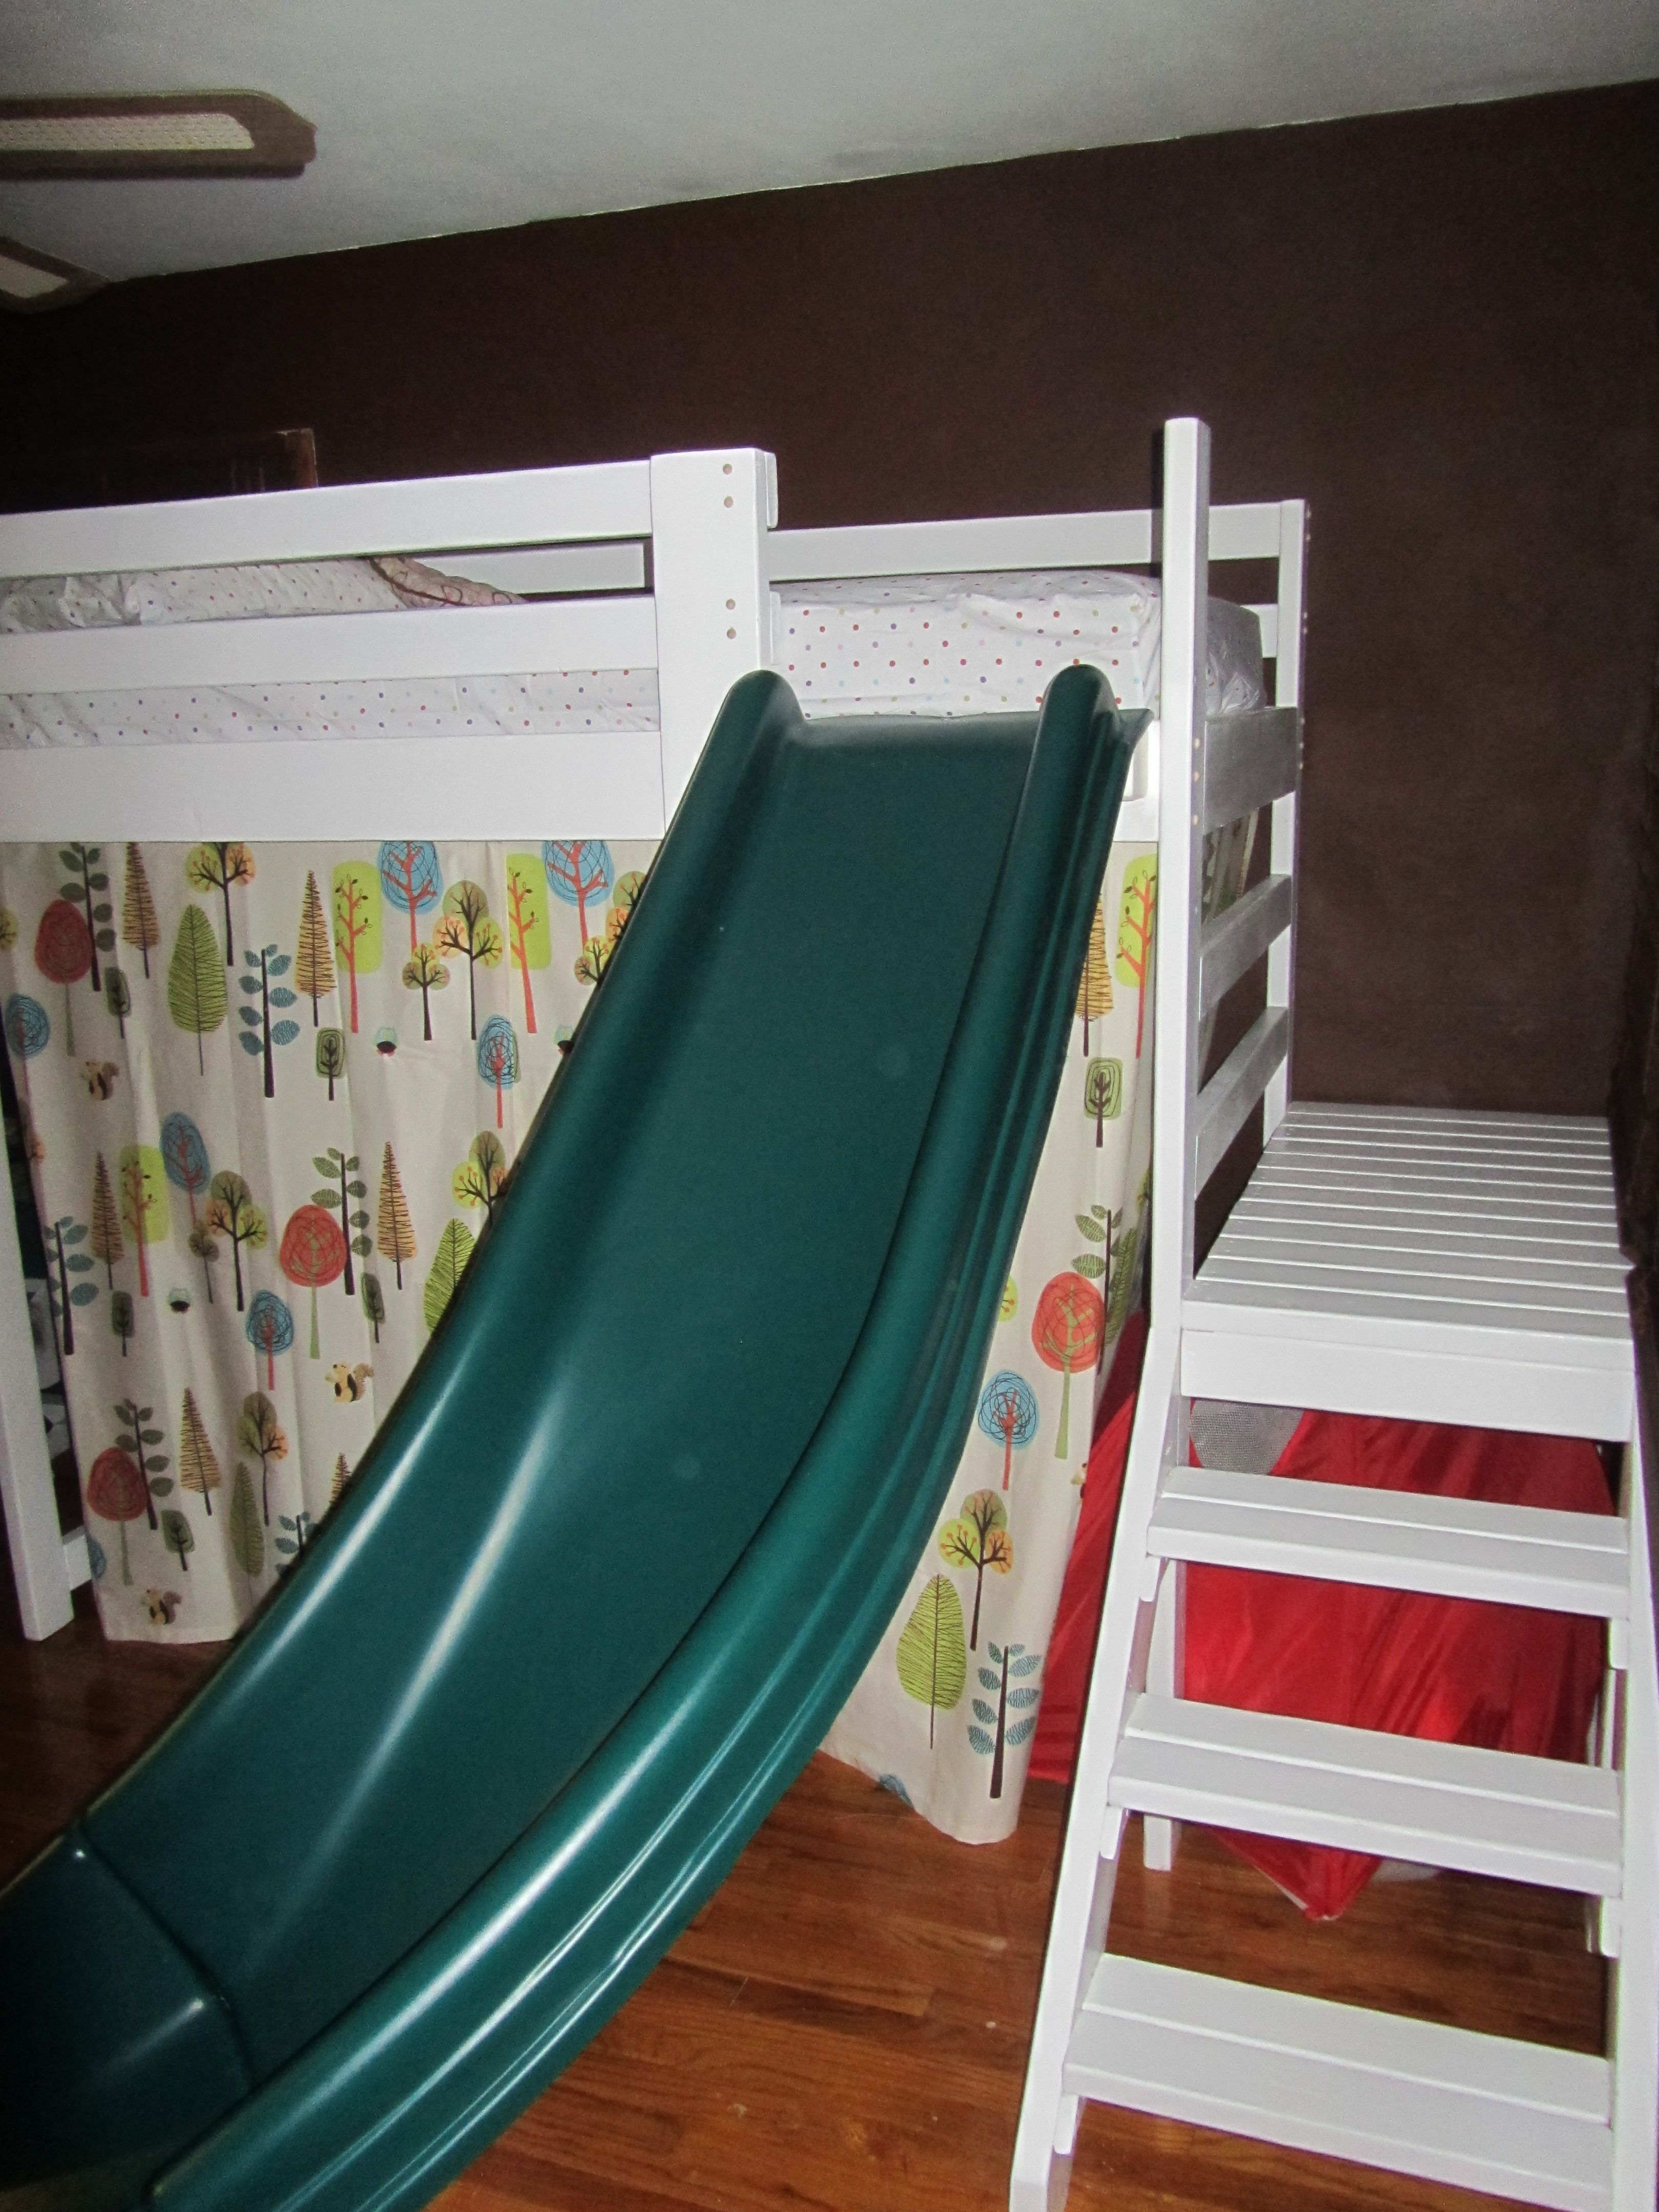 I Like The Steps And Slide At End Of The Bed Kids Bed Ideas Camp